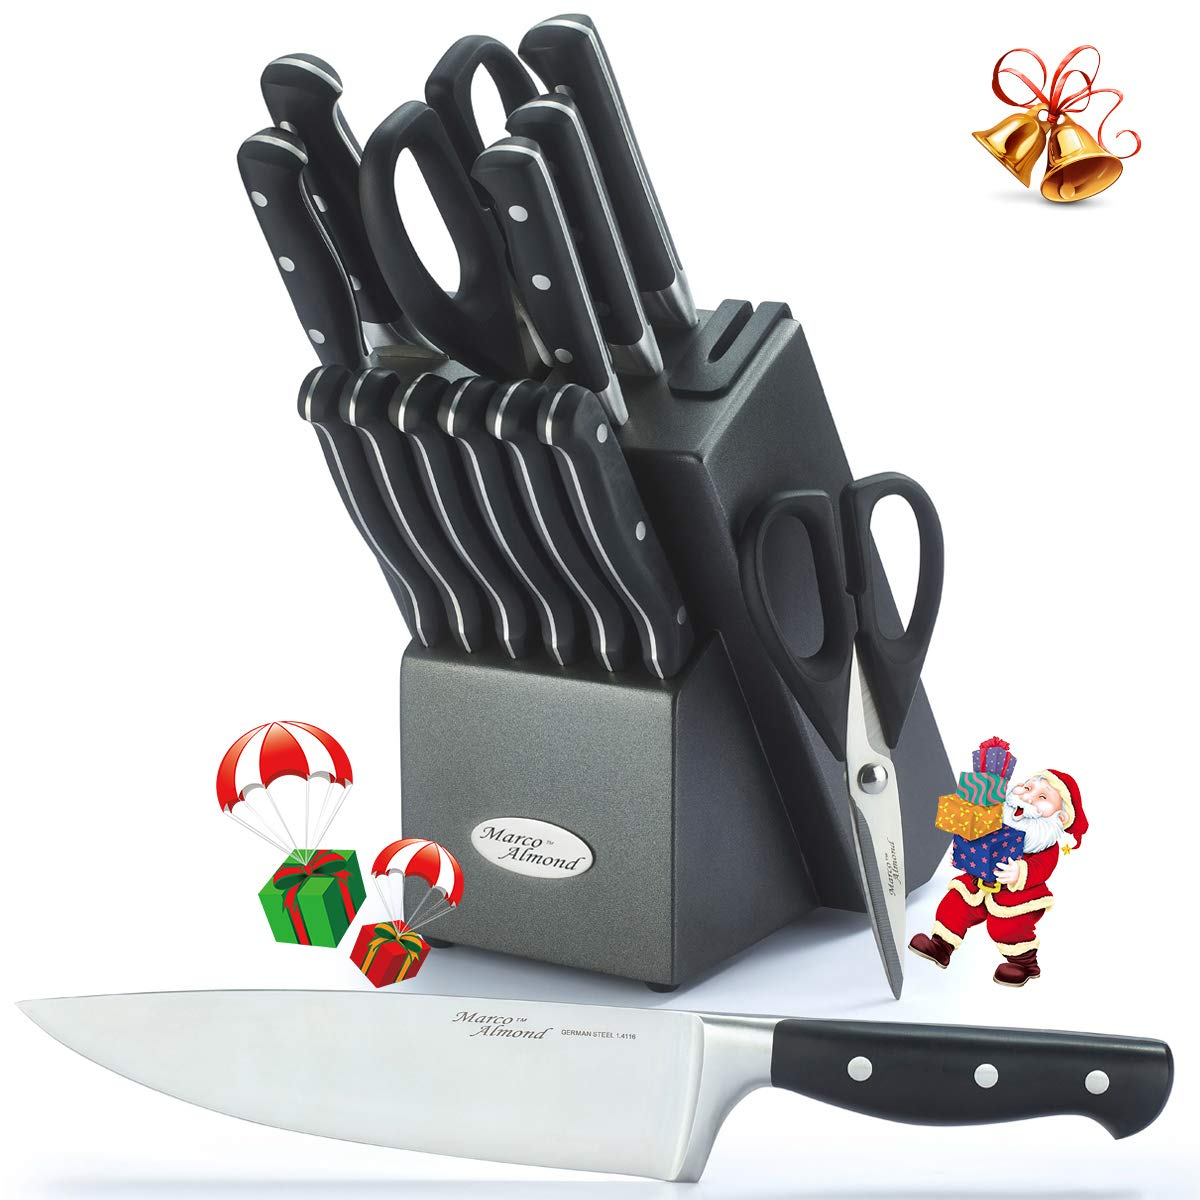 Marco Almond KYA33, Premium German Steel Knife, 15 Pieces Chief Cutlery Knives Set with Wooden Block, 2 pcs Kitchen Scissors, Built in Sharpener, Best Gift Black, Self by Marco Almond (Image #1)